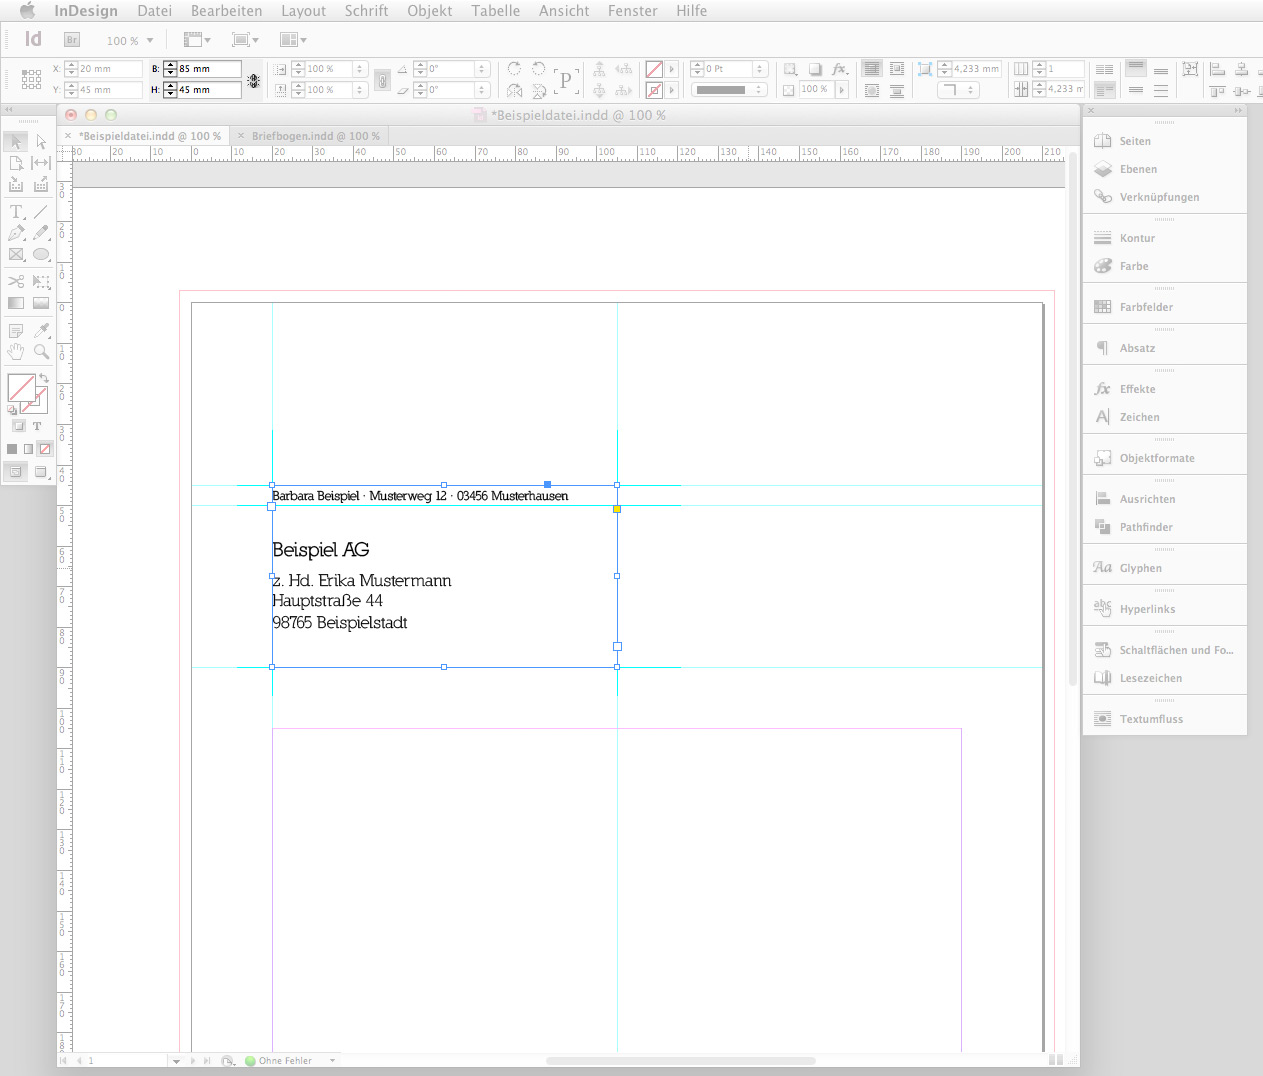 briefbogen im indesign cs6 erstellen step 3 - Briefbogen Muster